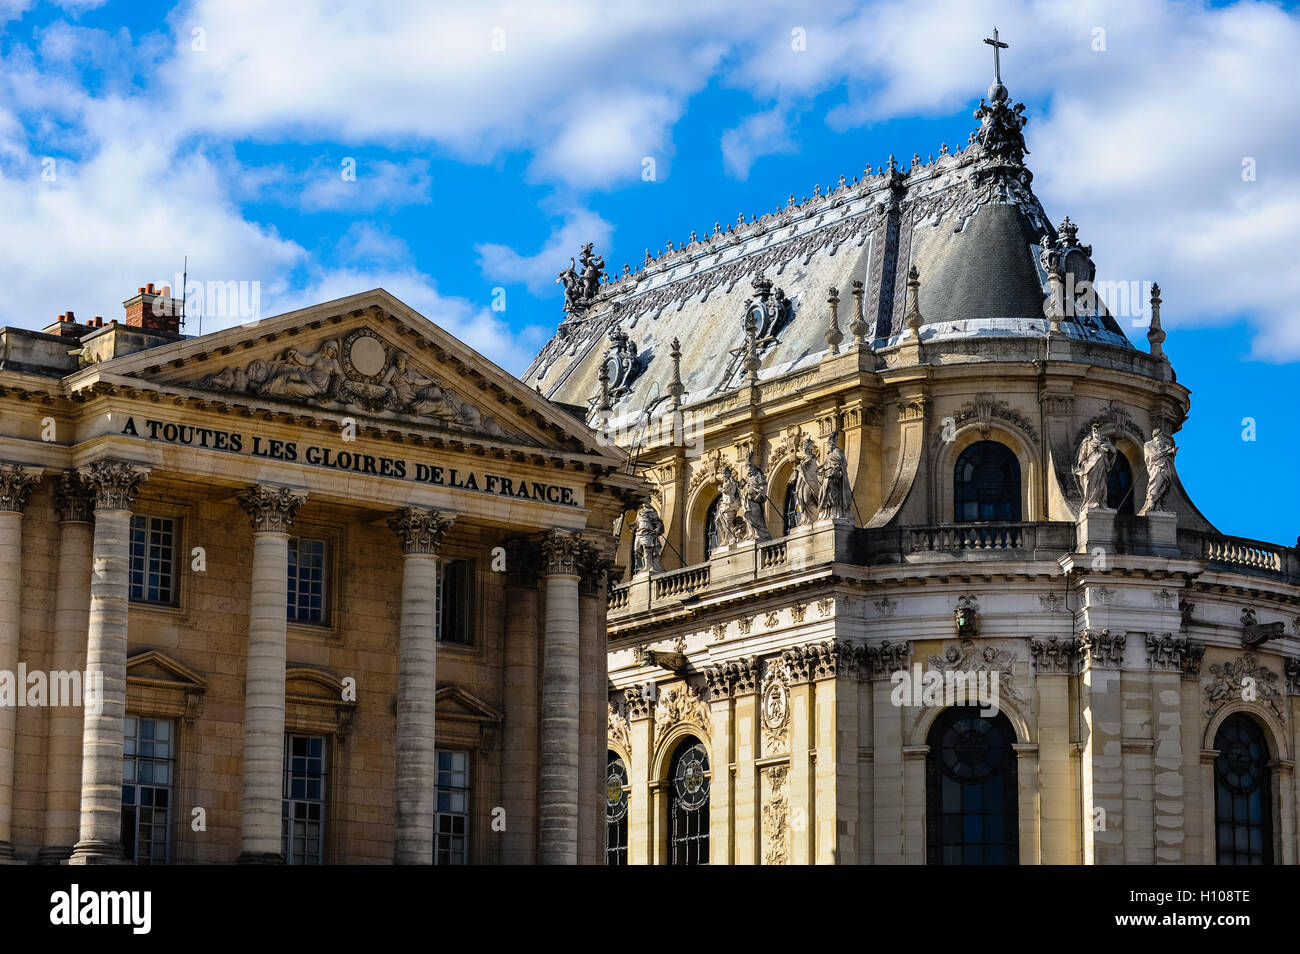 The Palace of Versailles, or simply Versailles, is a royal château close to Paris, France. Pavillon Gabriel - Stock Image